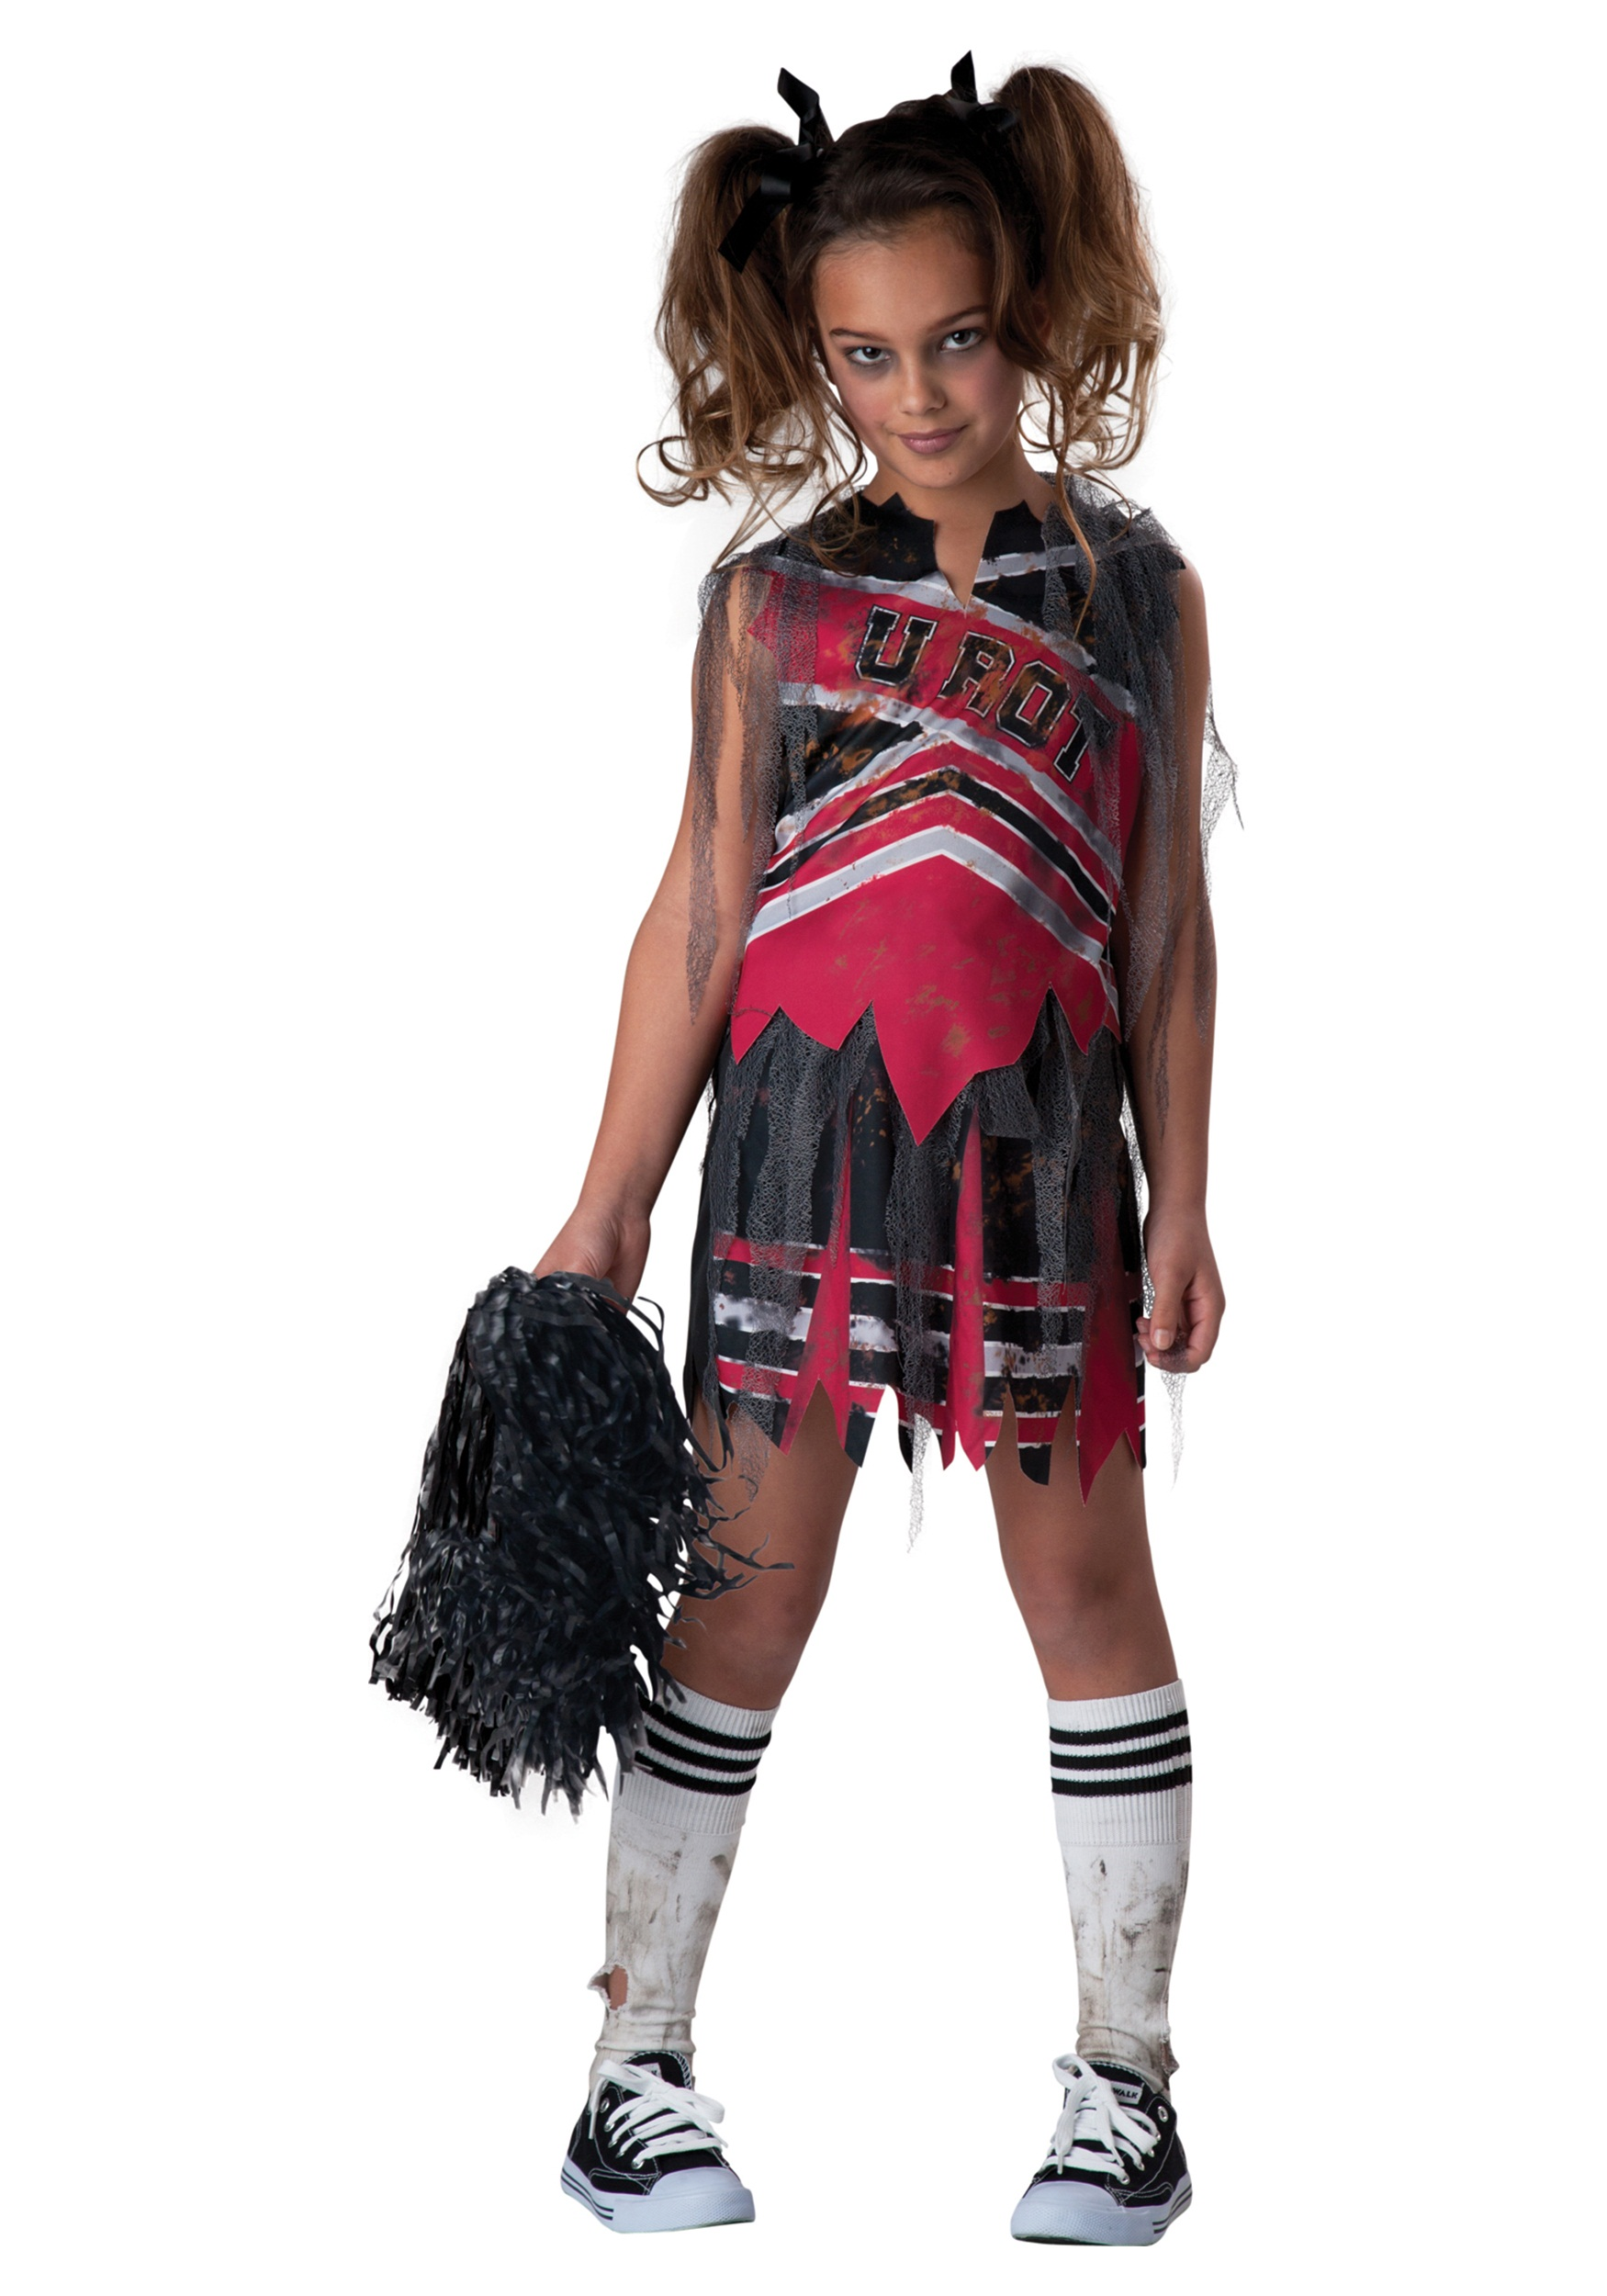 Spiritless Cheerleader Child Costume  sc 1 st  Halloween Costumes & Spiritless Cheerleader Child Costume - Halloween Costumes